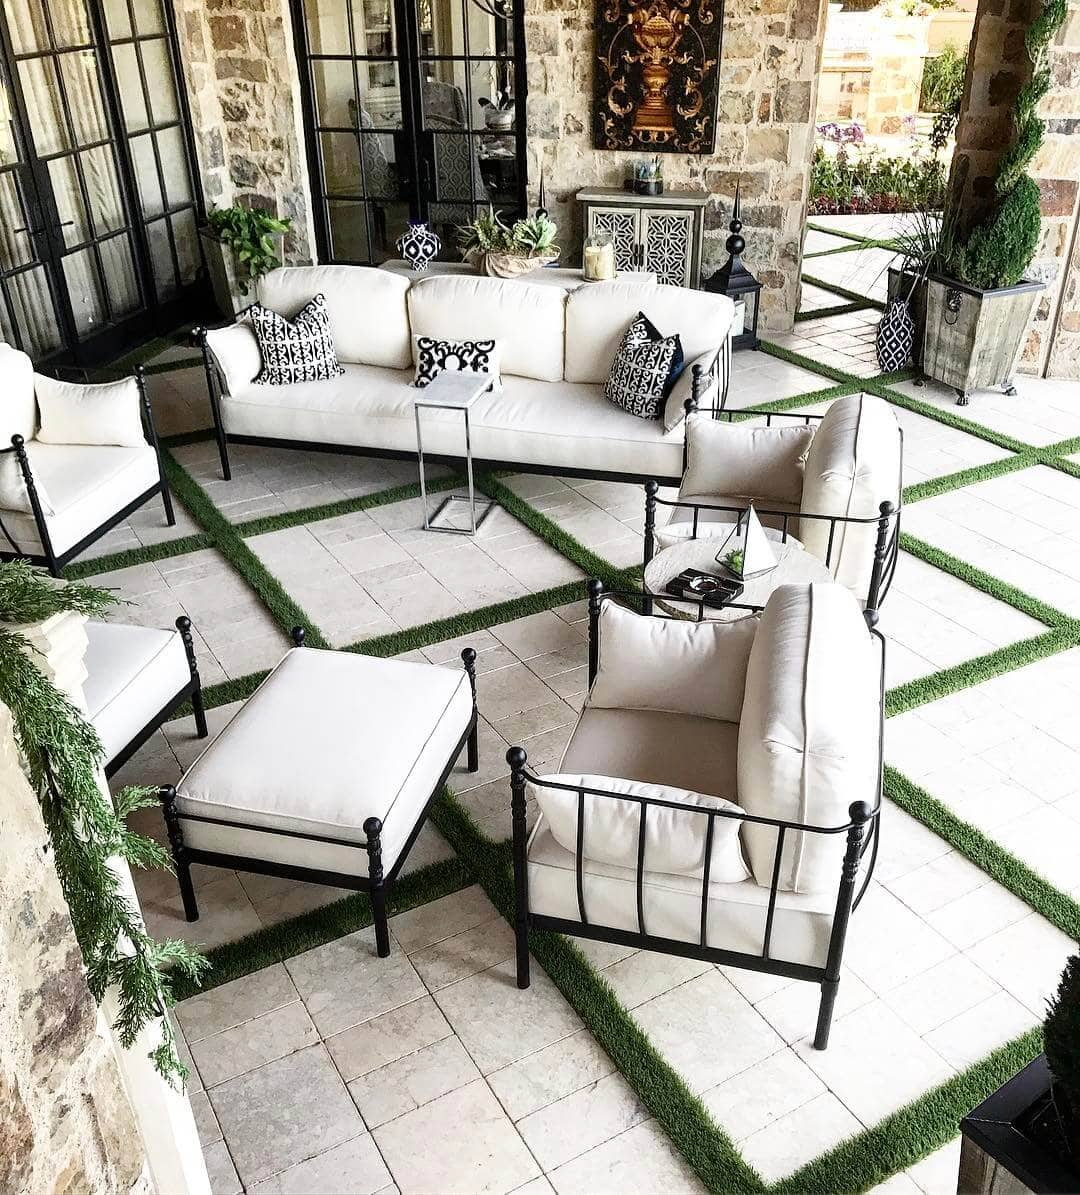 Outdoor Living Spaces: Make Furnishings Work Twice as Hard